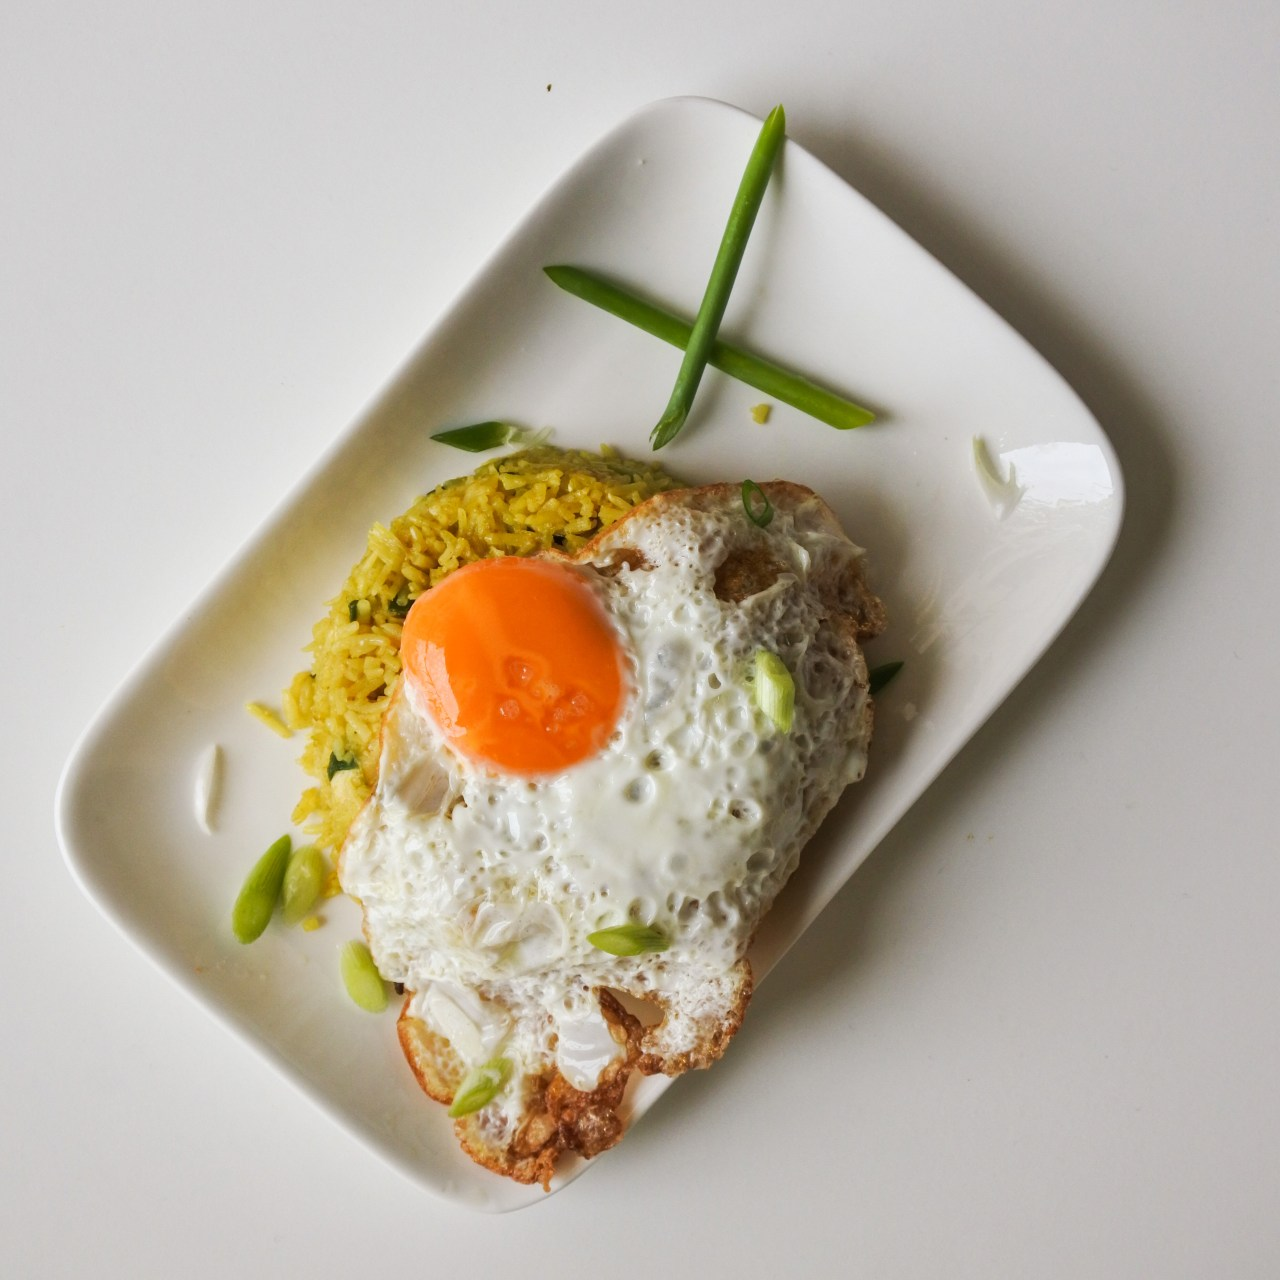 A sunny side up egg atop a mound of curried rice garnished with chopped scallions on a rectangular white plate